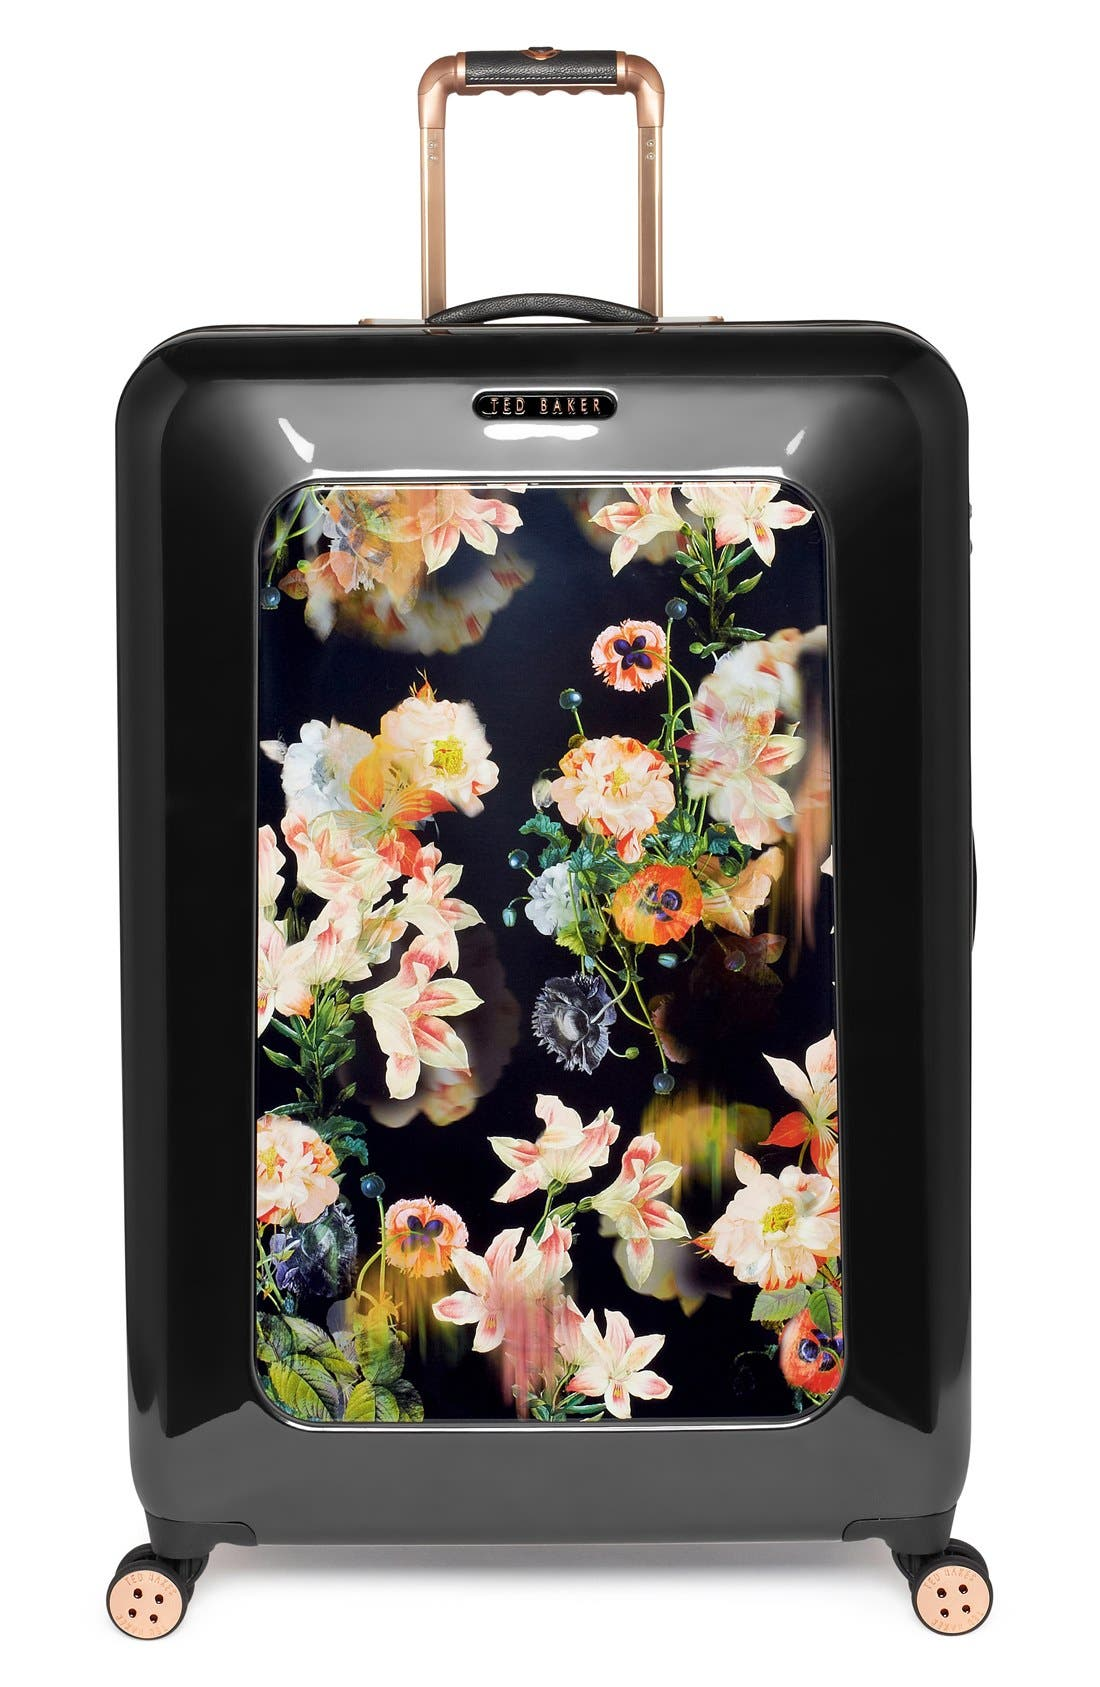 Alternate Image 1 Selected - Ted Baker London 'Large Opulent Blooms' Hard Shell Suitcase (32 Inch)